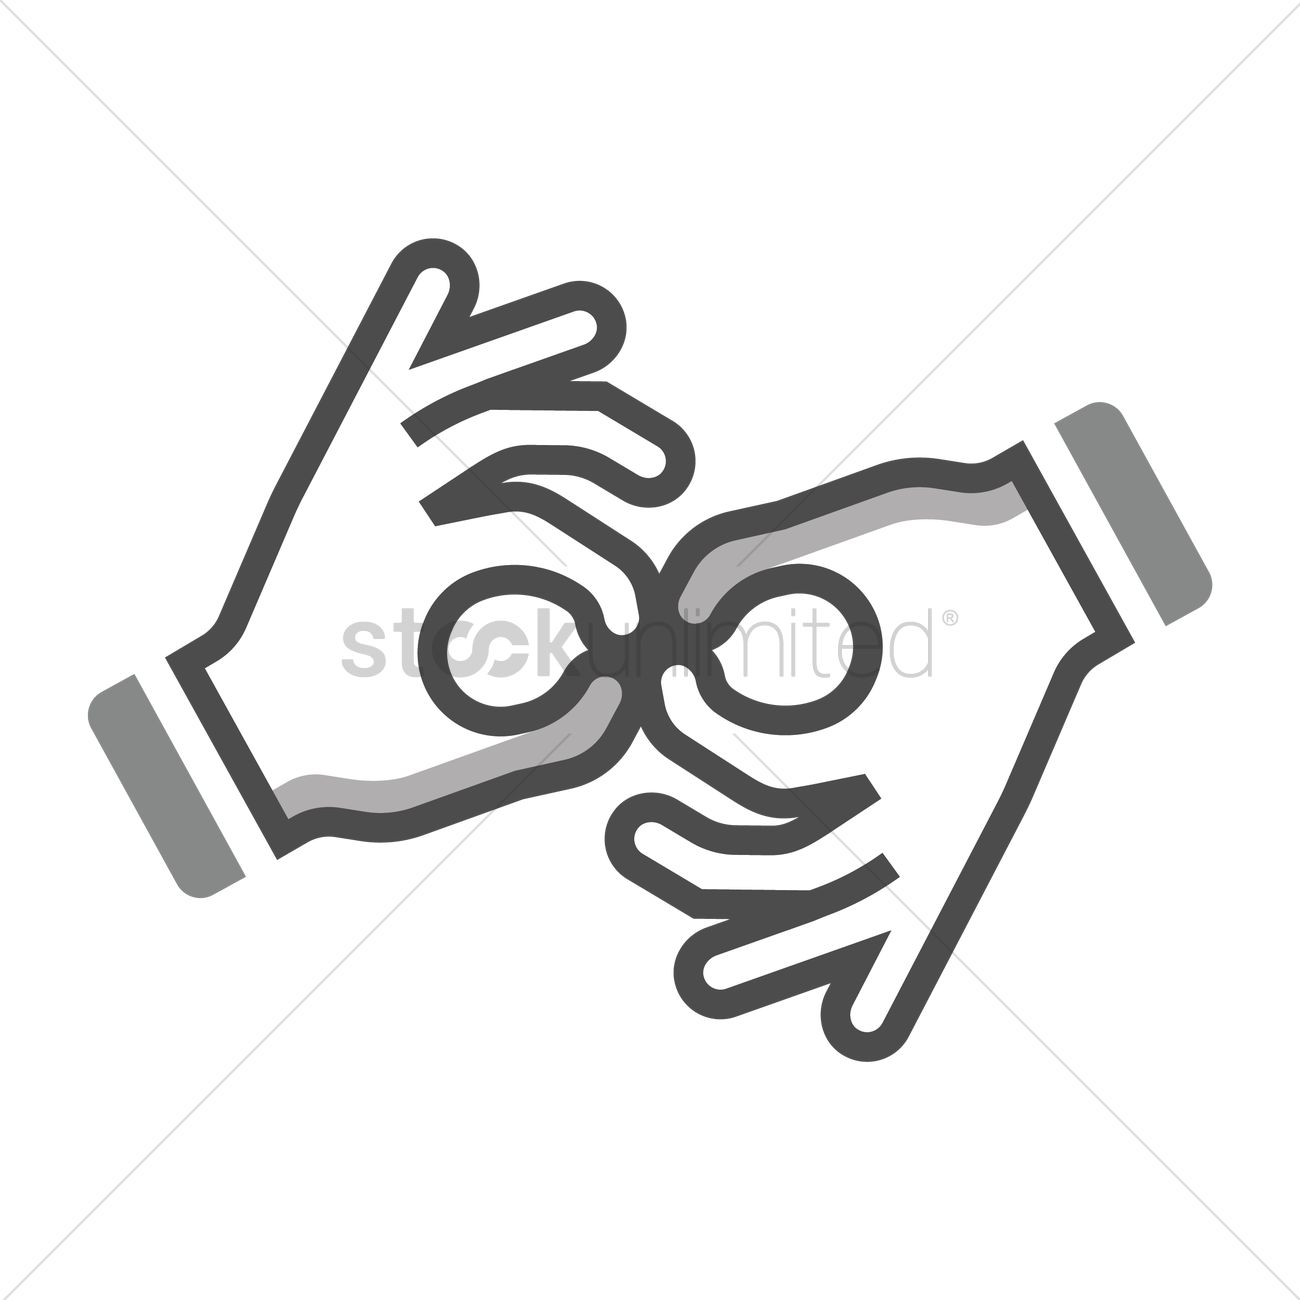 Sign Language Icon Vector Image 1956490 Stockunlimited